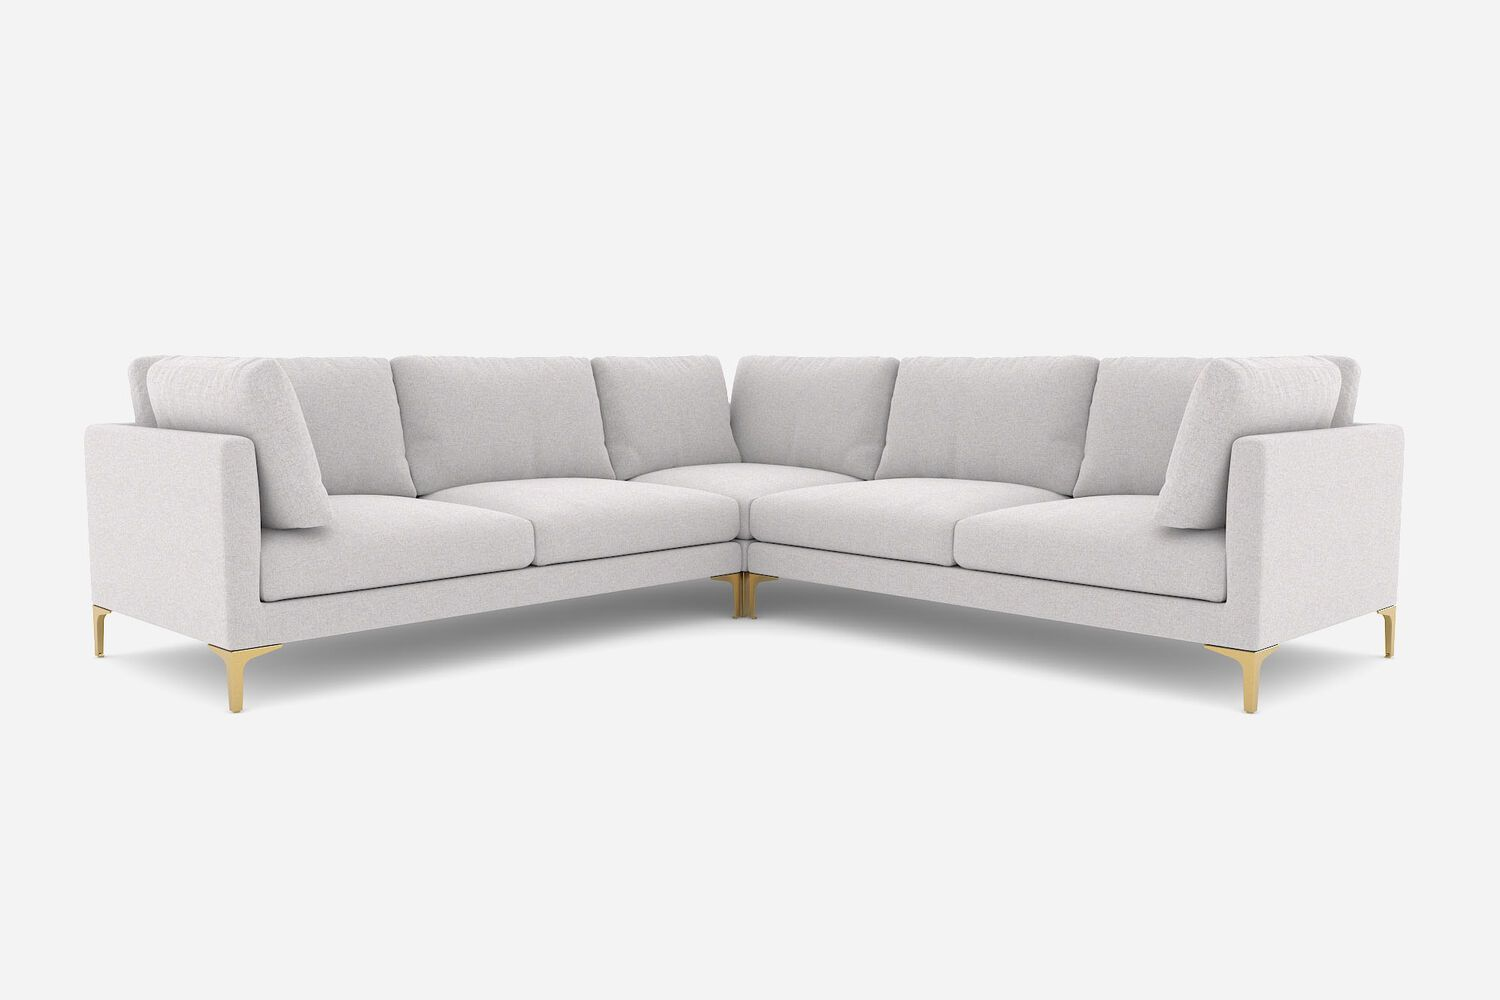 Adams L Shape Sectional Sofa Dove Grey Brass Castlery L Shaped Sofa Designs Sectional Sofa Sofa